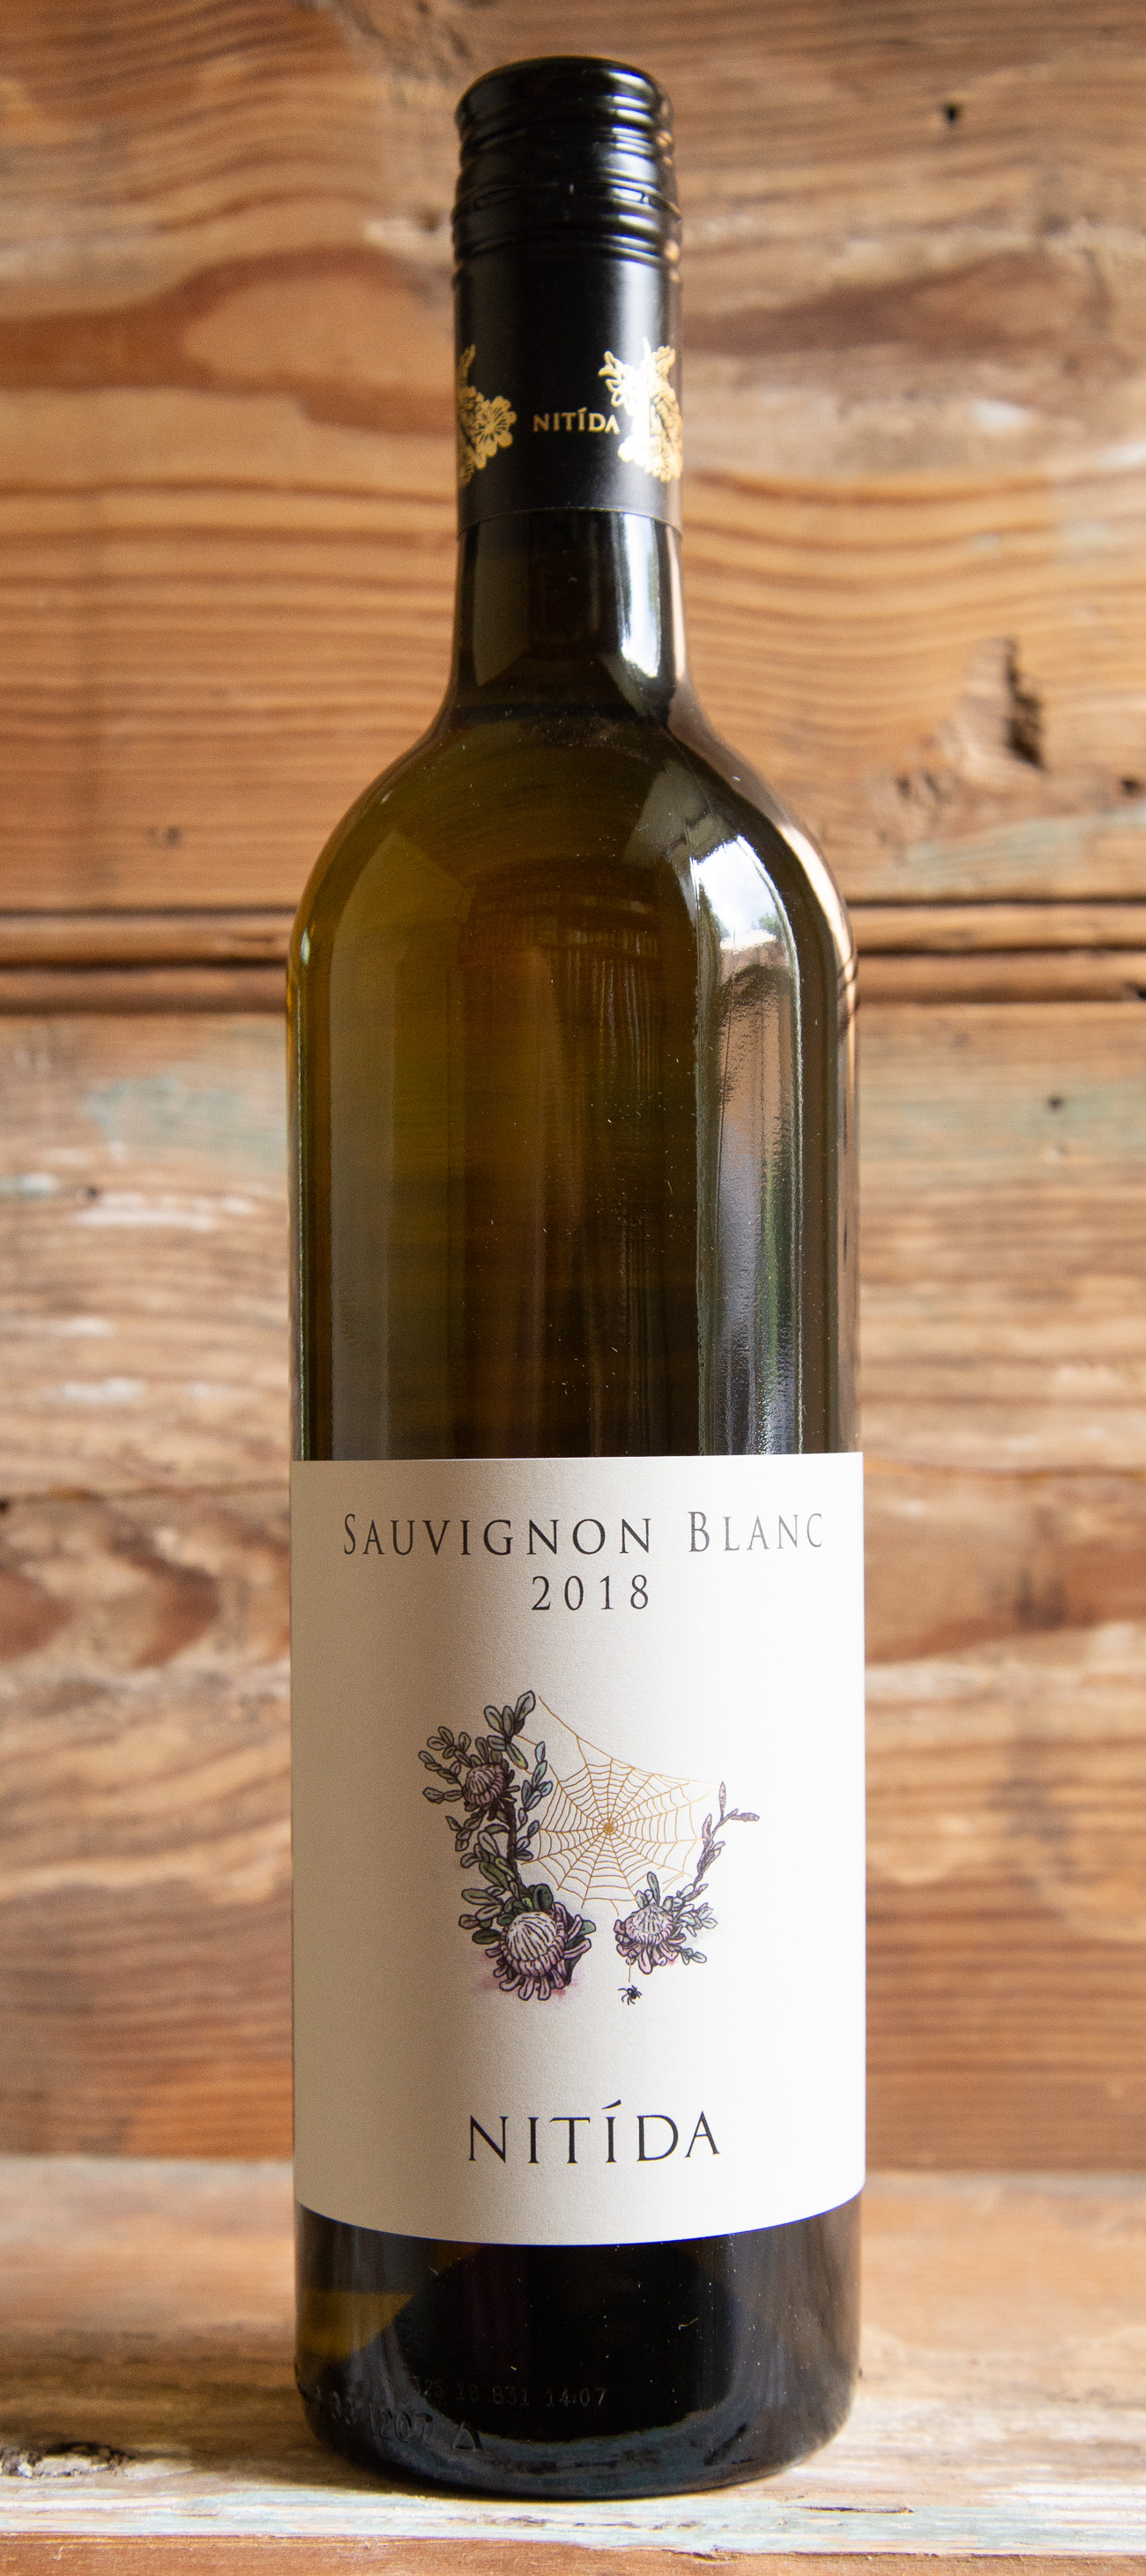 Nitida Sauvignon Blanc 2018 - Origin: South AfricaRetail: $18.95 | Sale: $17.05This small Durbanville property houses one of South Africa's most successful small wine cellars while also maintaining a flock of 50 sheep, 2 cows and a sheepdog. The grapes were harvested in 25 different pickings over a time span of 6 weeks. This gives them the variety of building blocks to create a complex Sauvignon Blanc that reflects the riper tropical fruit flavors of the 2018 harvest, with green undertones that are traditional from the Durbanville terroir. There is a superb balance of fruit, delicious minerality and perky acidity. Sip your first glass with oysters on the half shell topped with a shallot mignonette -- their brininess is the perfect pair. This wine is also a great choice for a light supper or lunch with a loaded Nicoise salad.100% Sauvignon Blanc